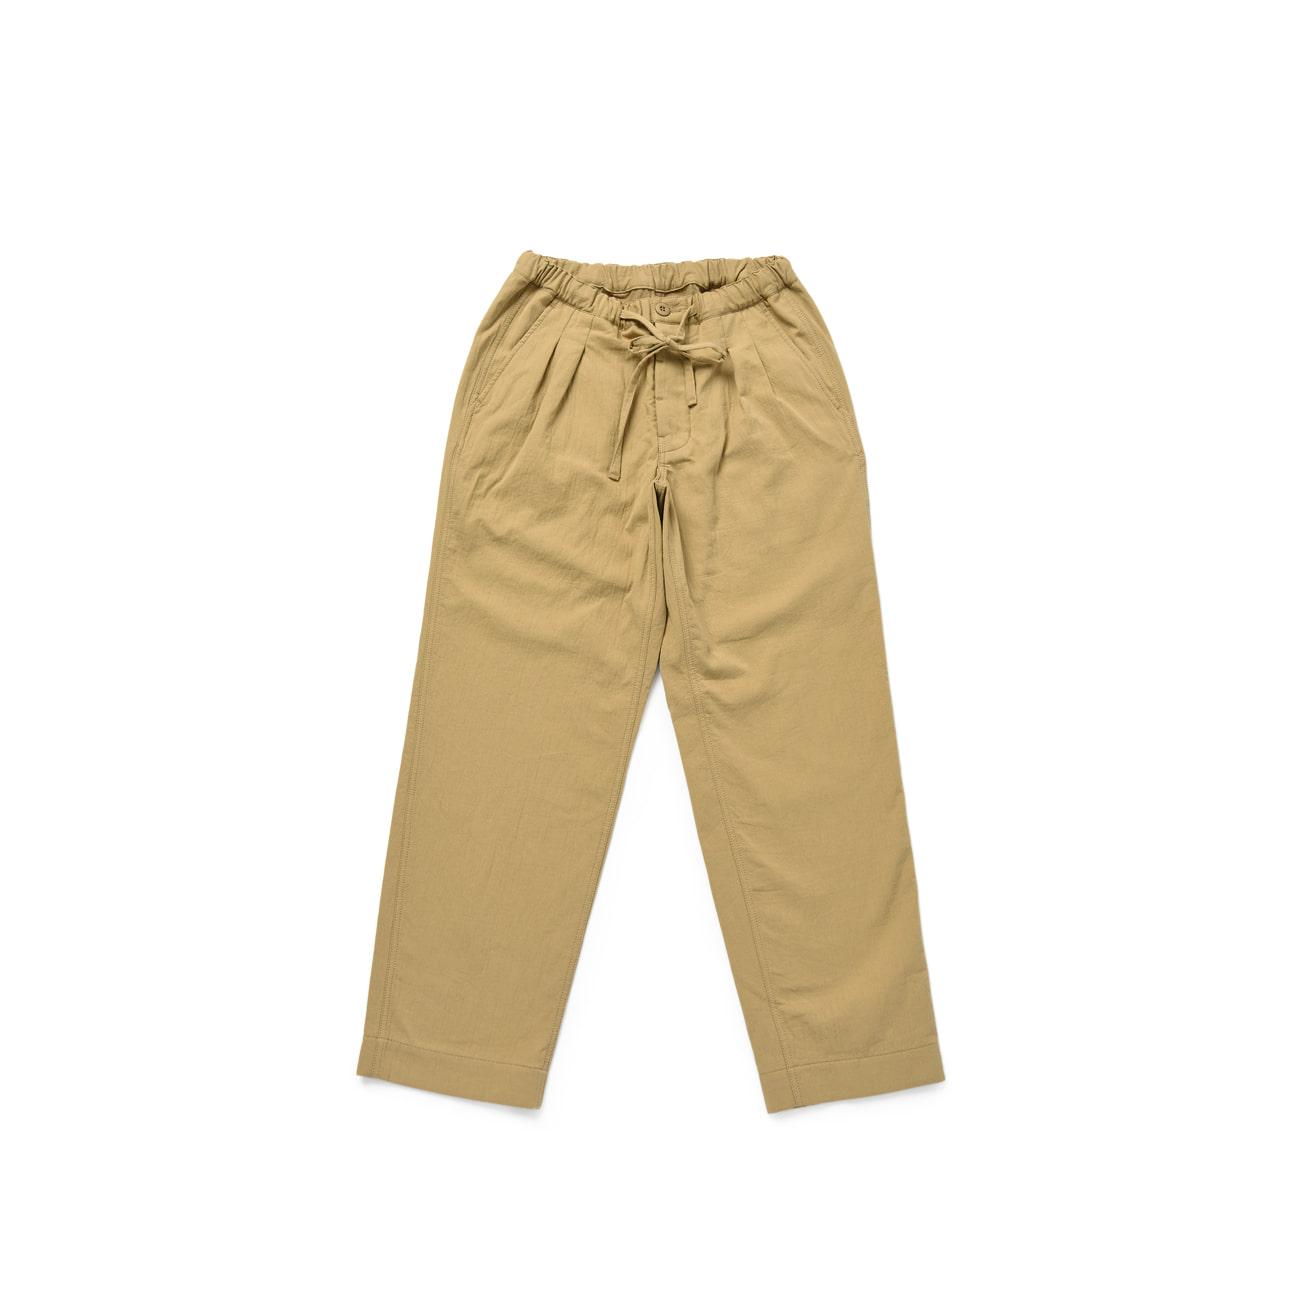 Warm Tone Easy Pants